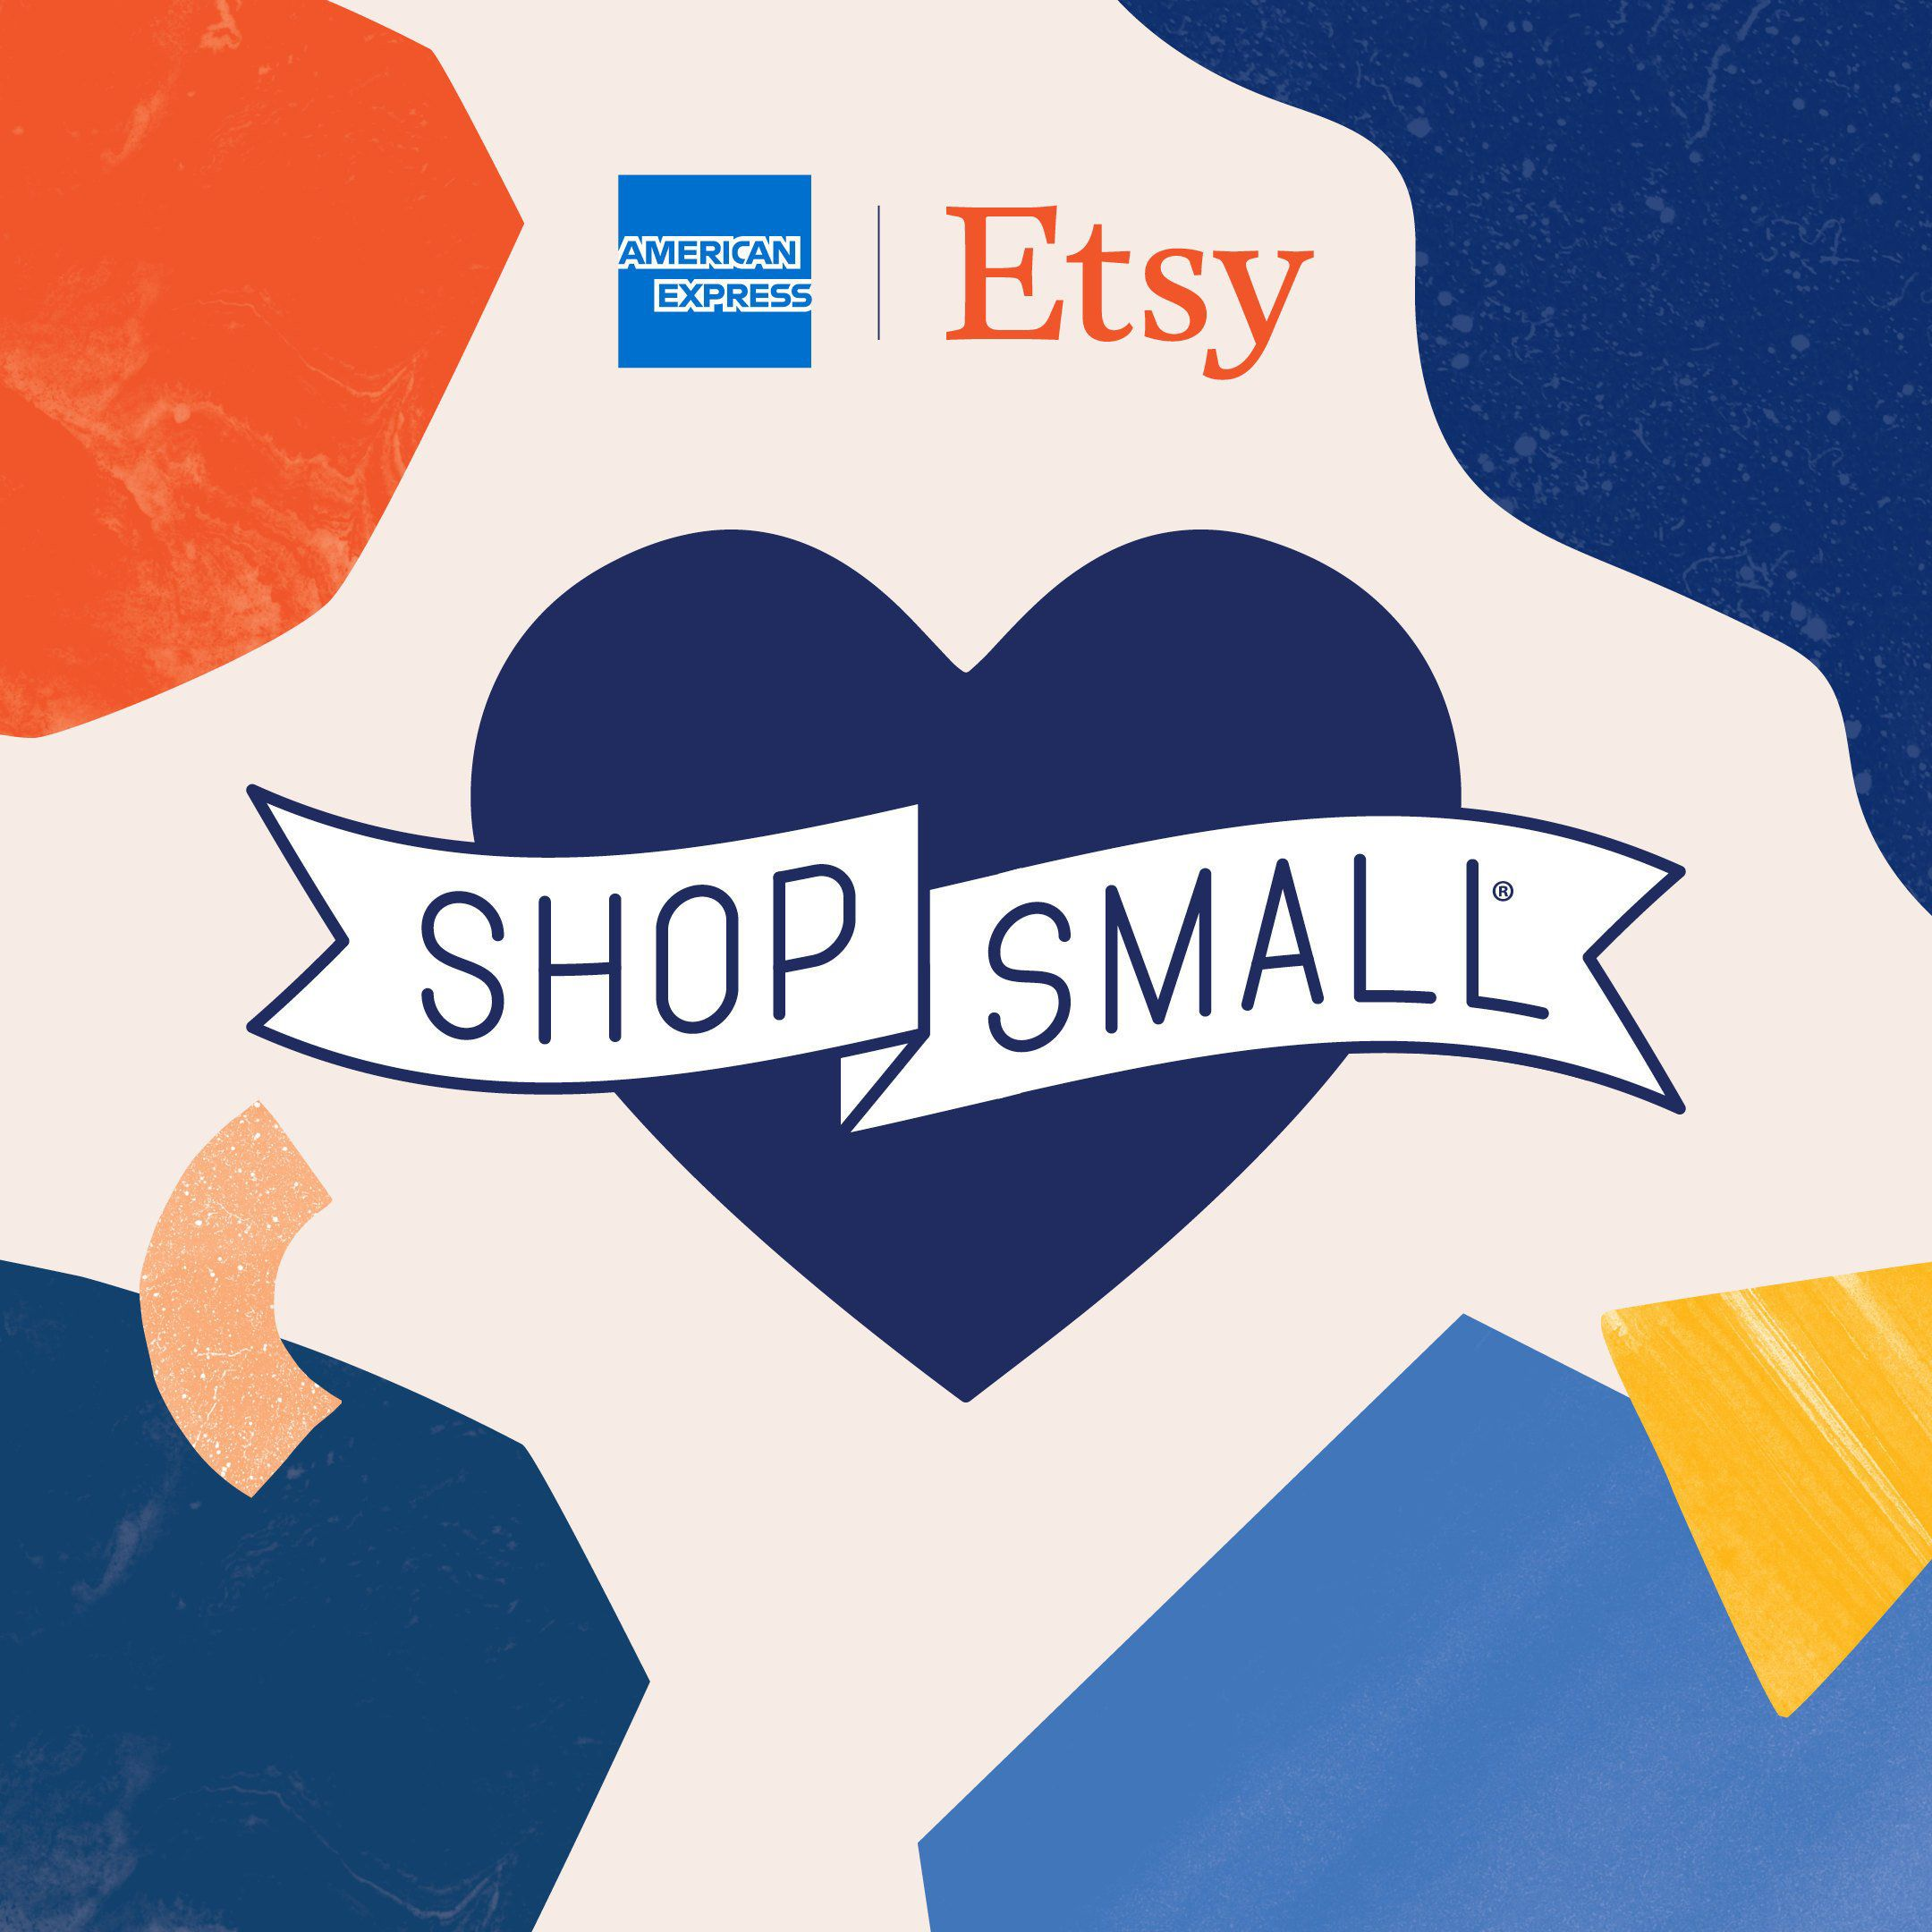 c8cfac7586980 Support small businesses today & year-round on Etsy. #SmallBizSat ...